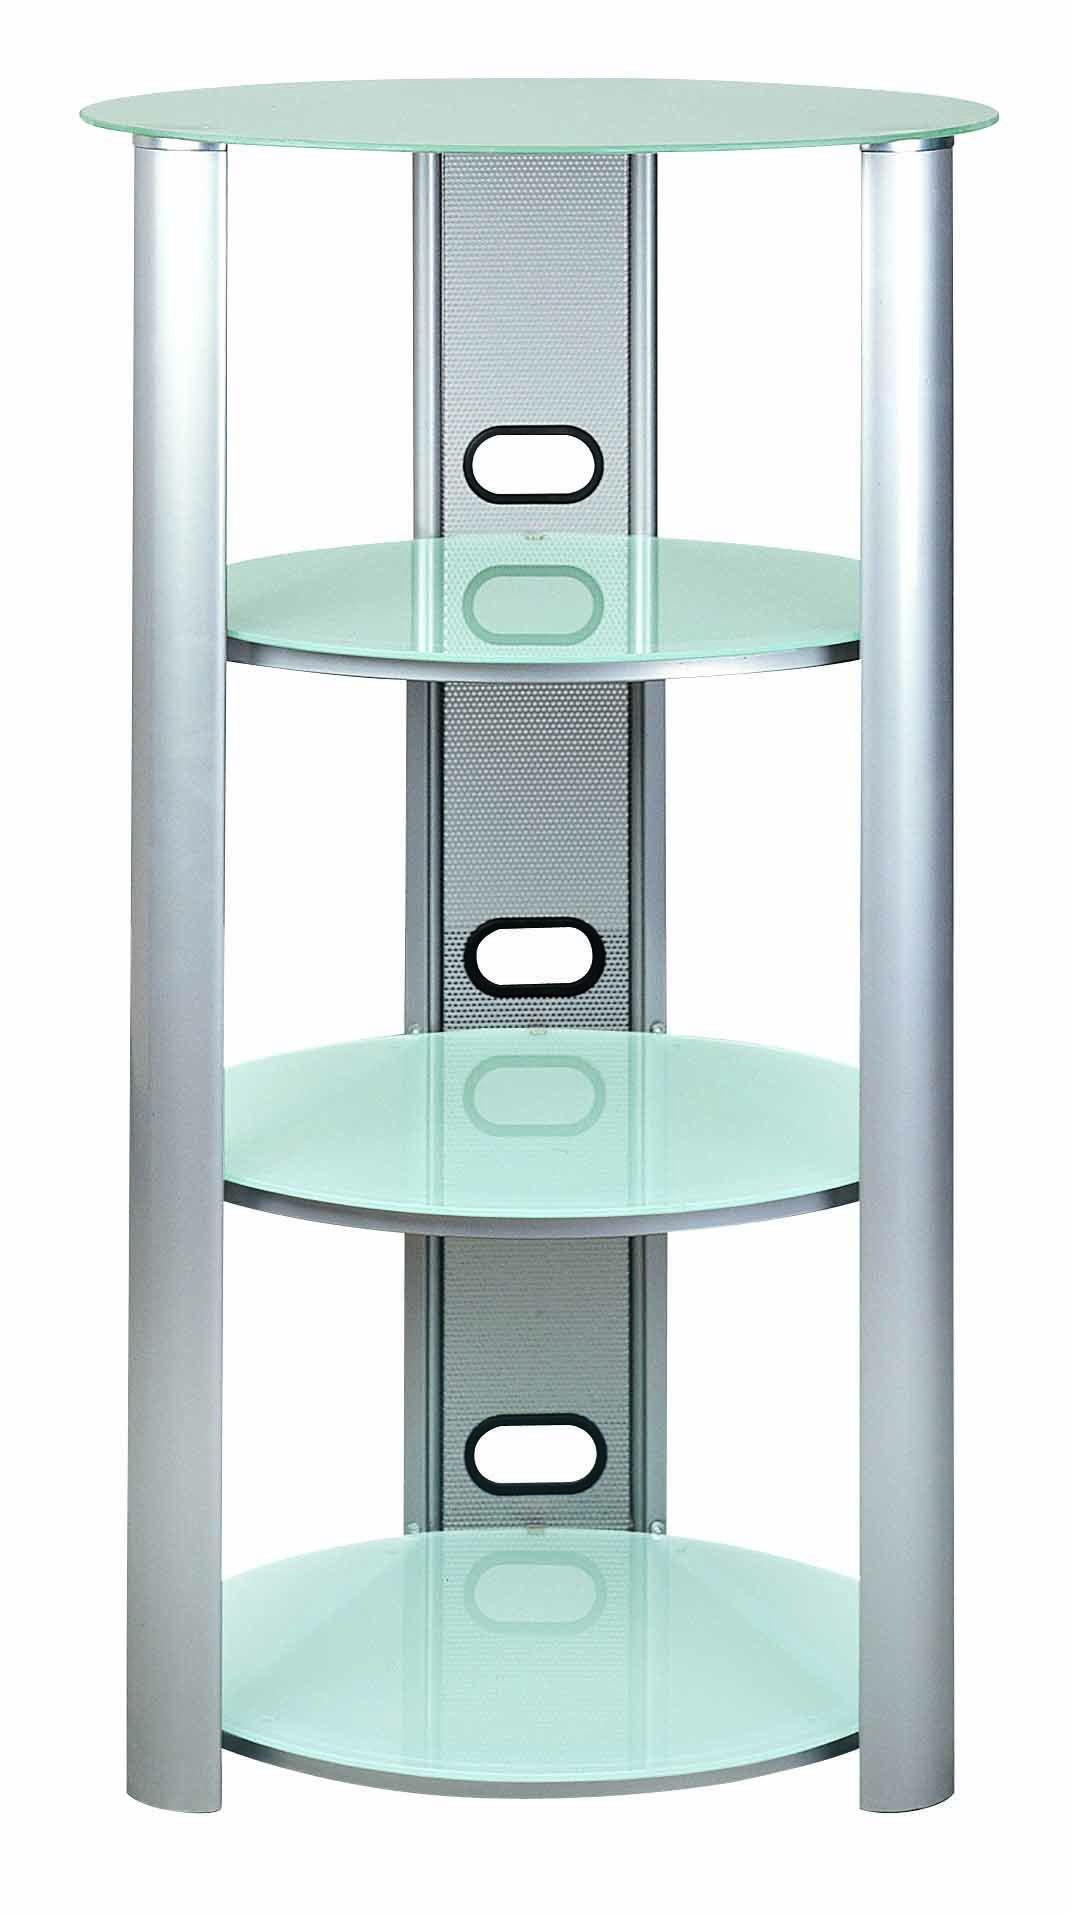 S Hold 8 Three Shelves Audio Racks Tempered Frosted Glass Eye Rack Wiring Shaped Tube With Silver Powder Coating Management Design